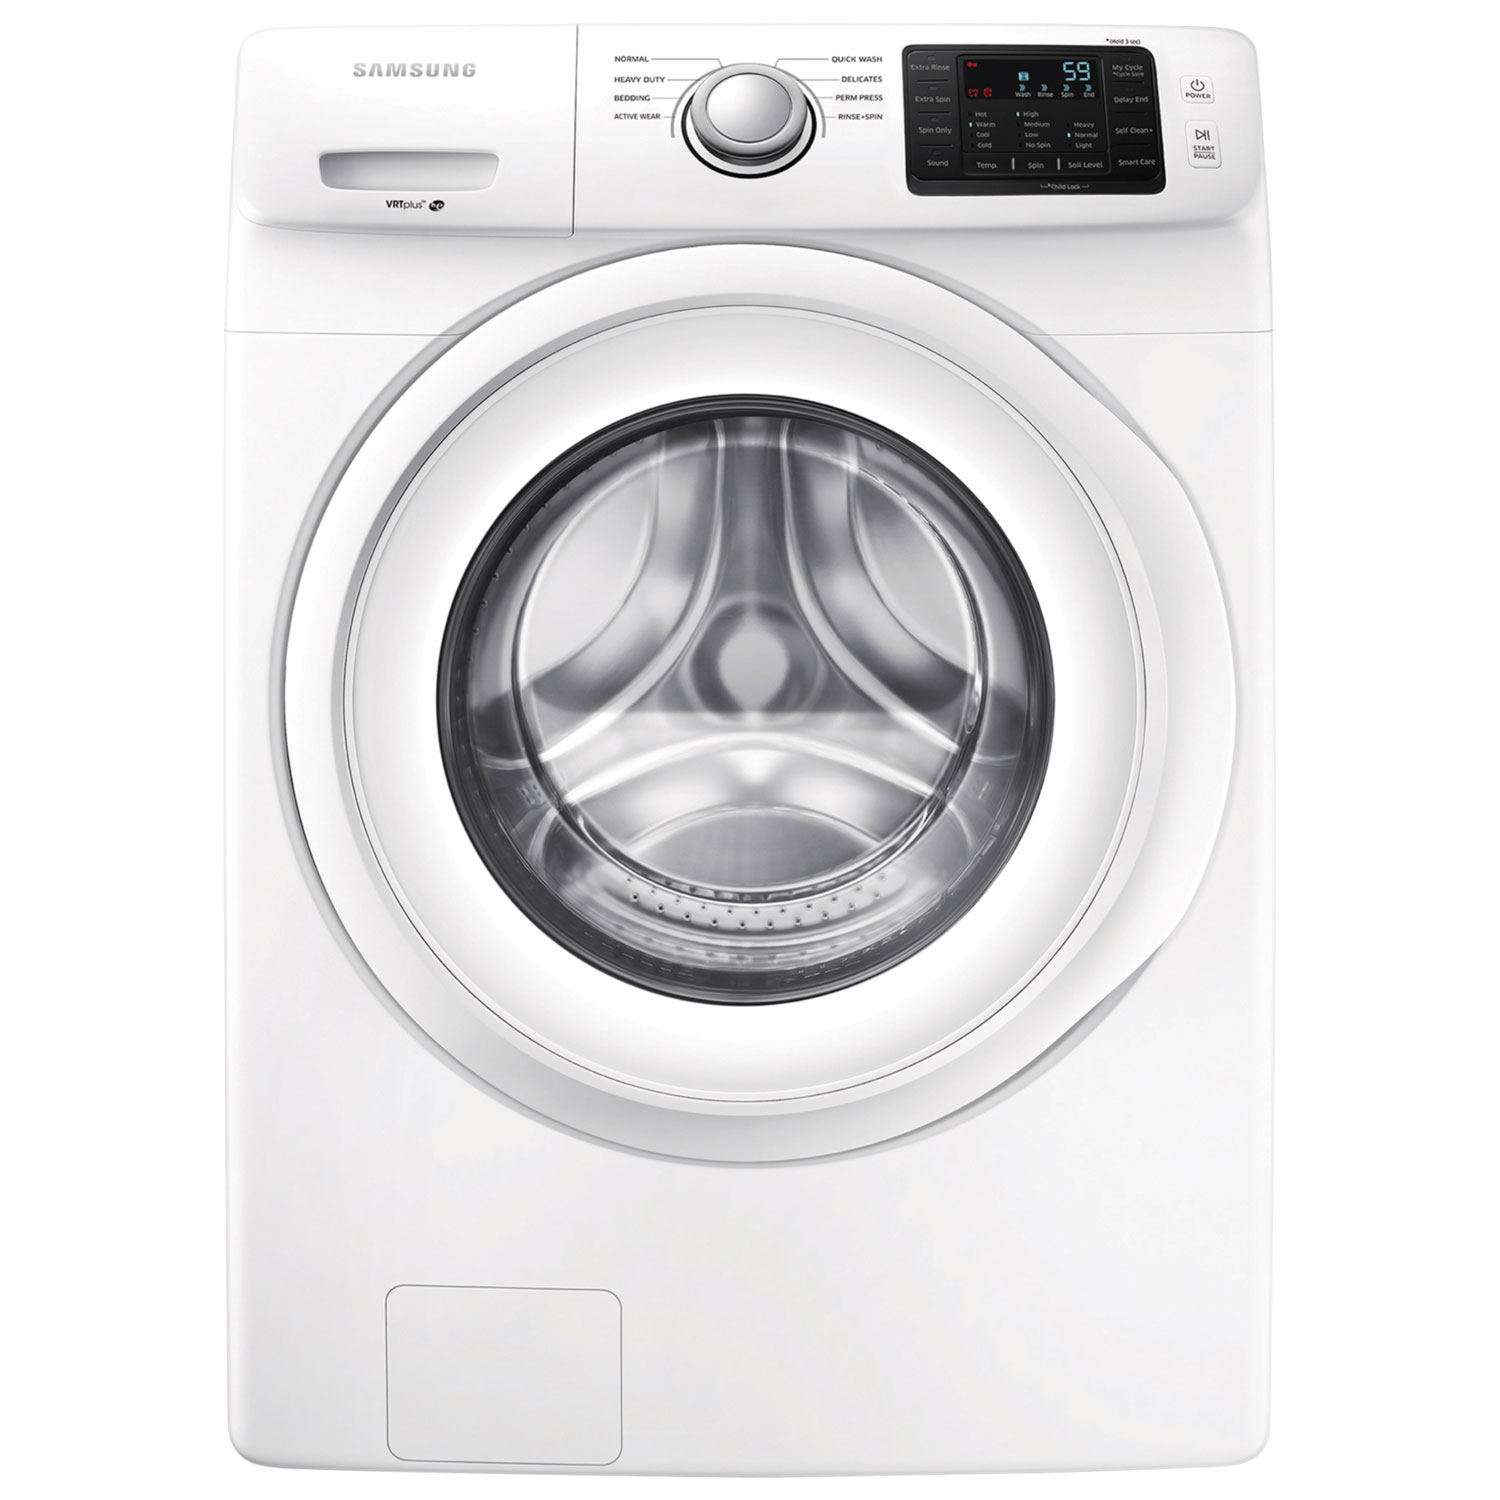 haier 1 0 cubic foot portable washing machine. samsung 5.2 cu. ft. high efficiency front load washer (wf45m5100aw) - white haier 1 0 cubic foot portable washing machine